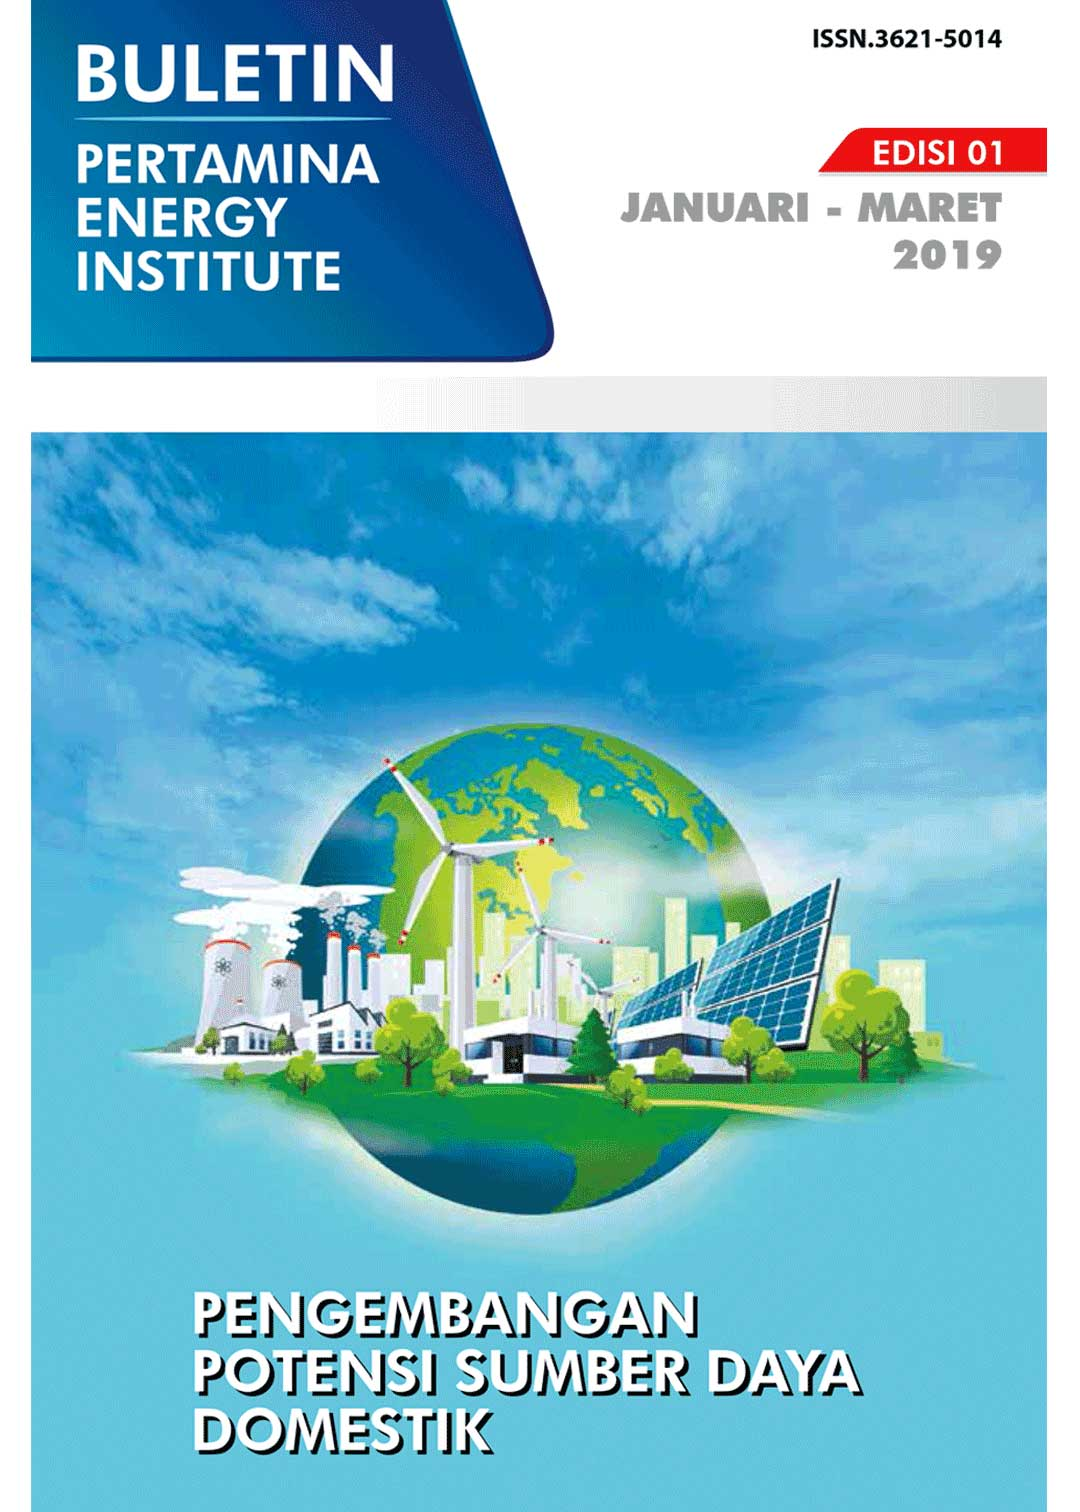 Pertamina Energy Institute - Edisi 01 (Januari - Maret 2019)